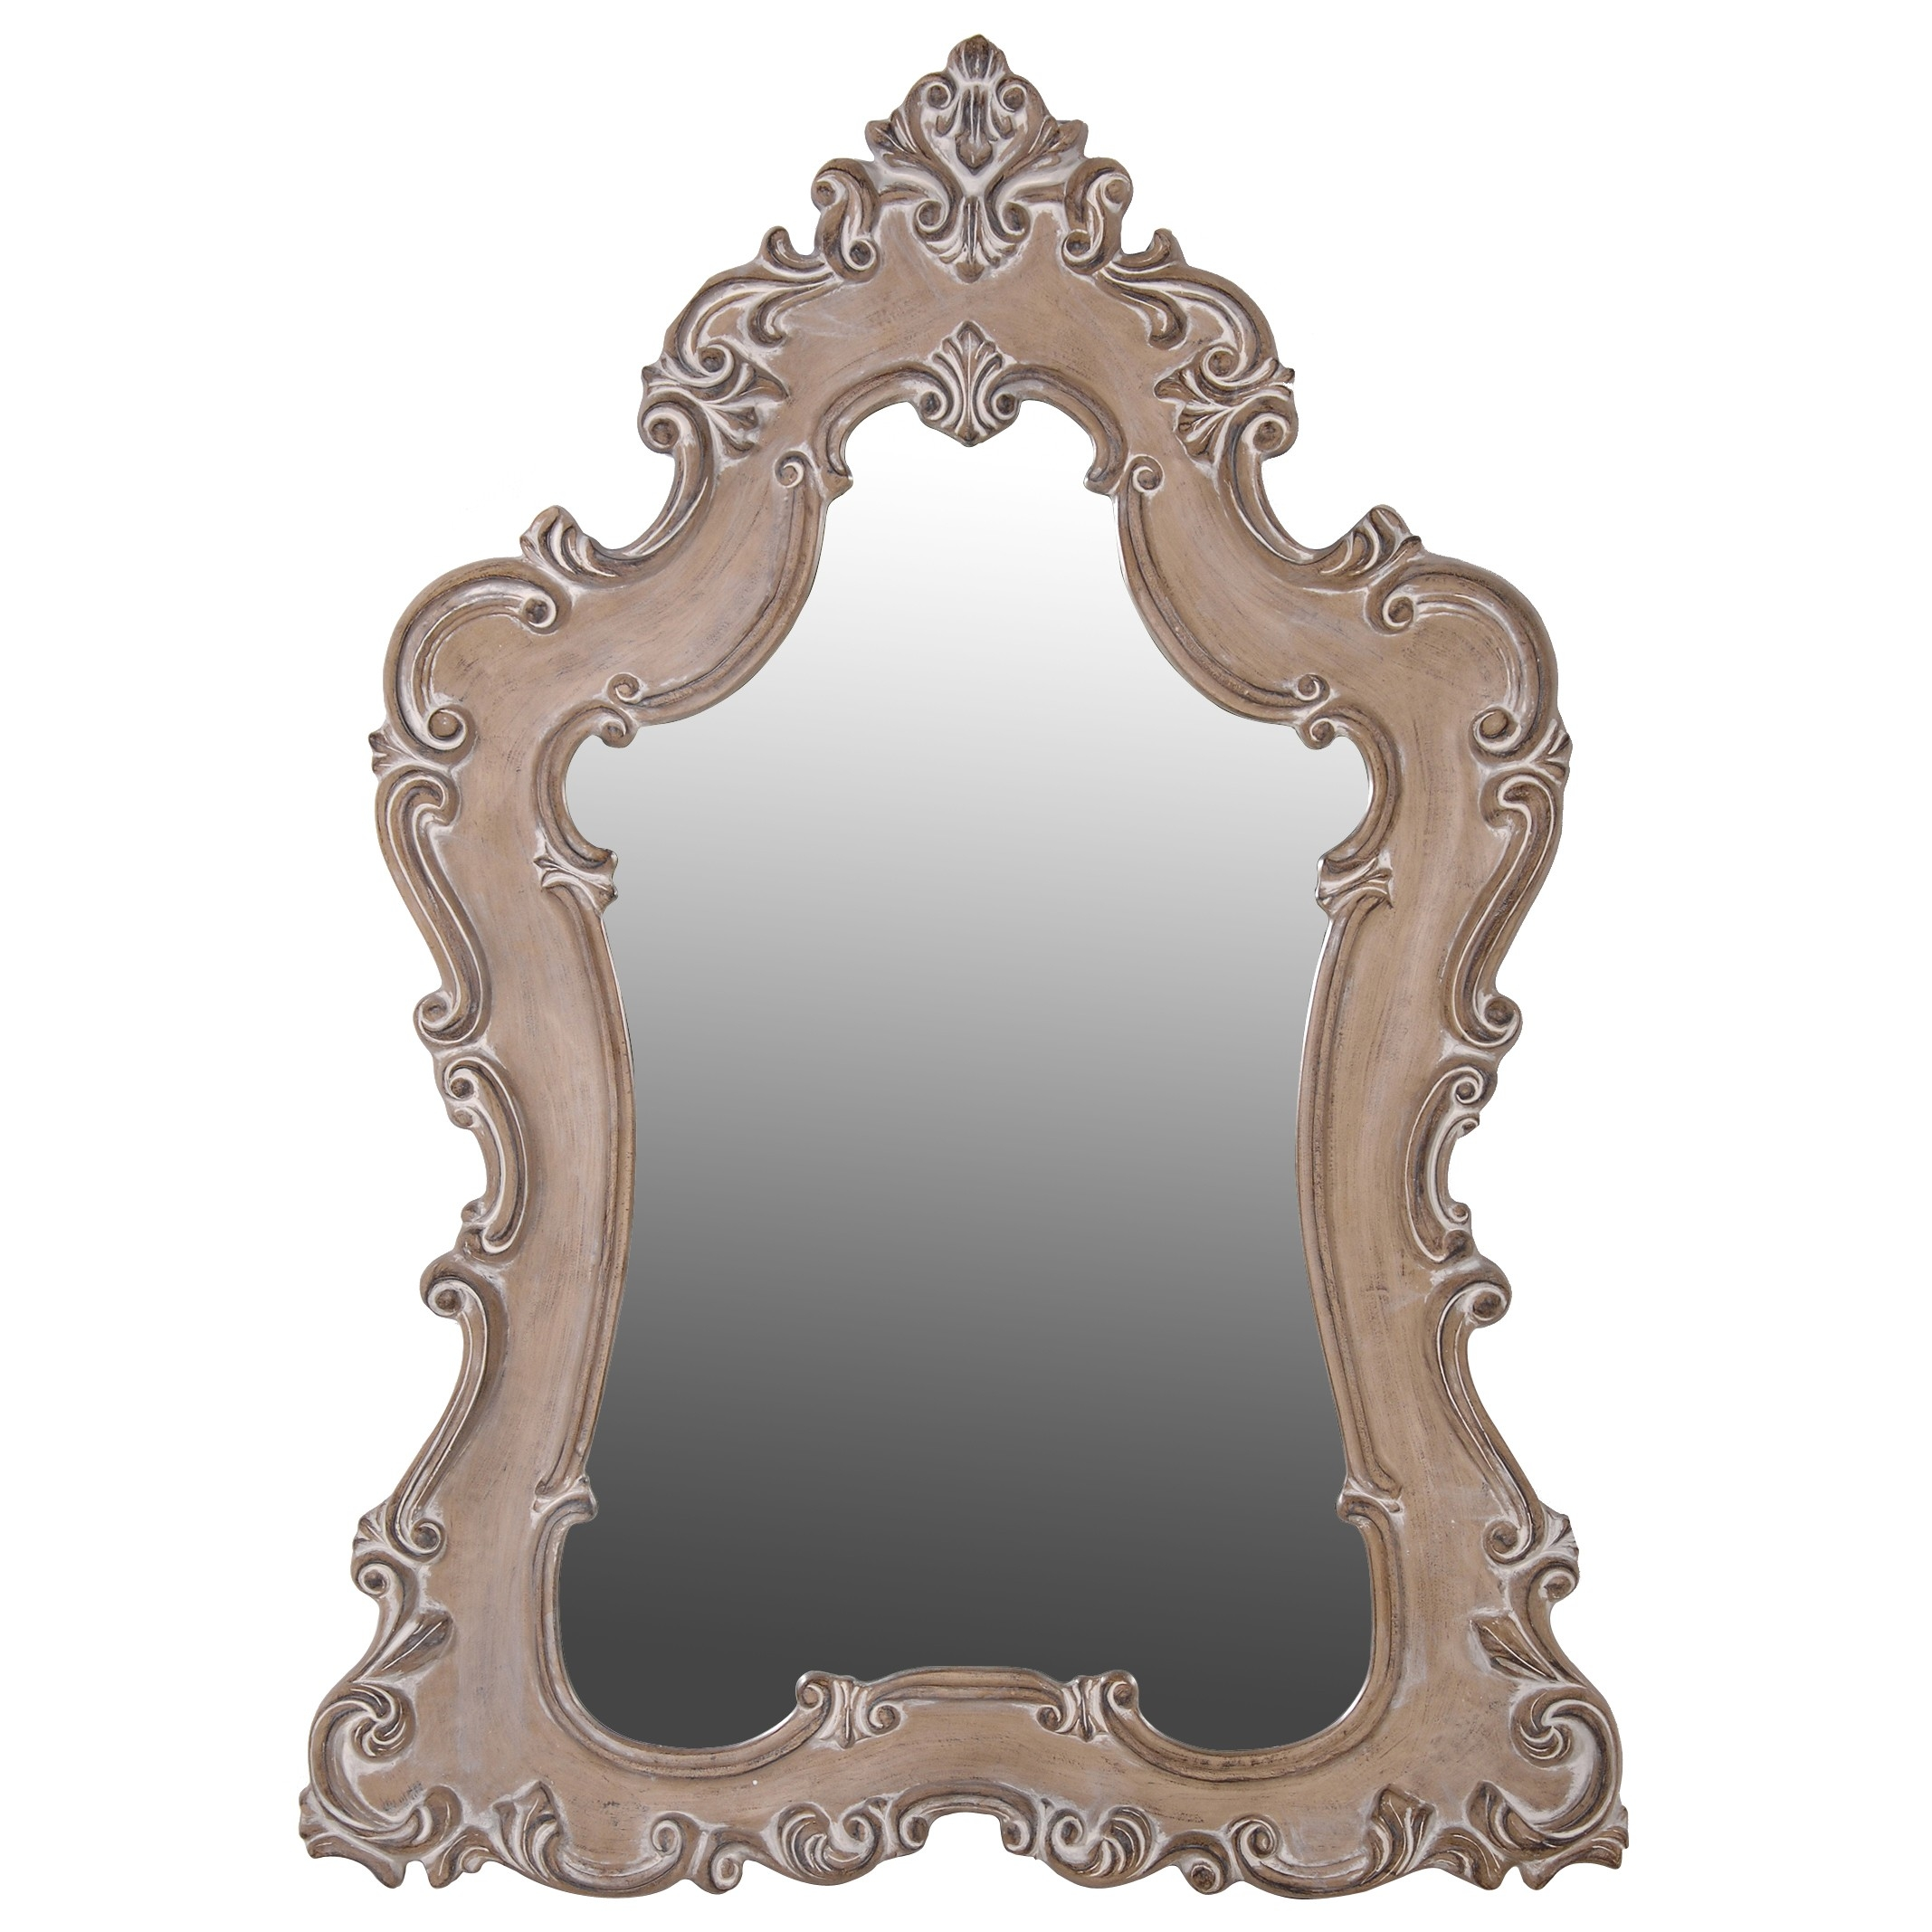 Stunning Design Ornate Wall Mirrors Projects Idea Of New Ideas For Ornate Wall Mirror (Image 12 of 15)